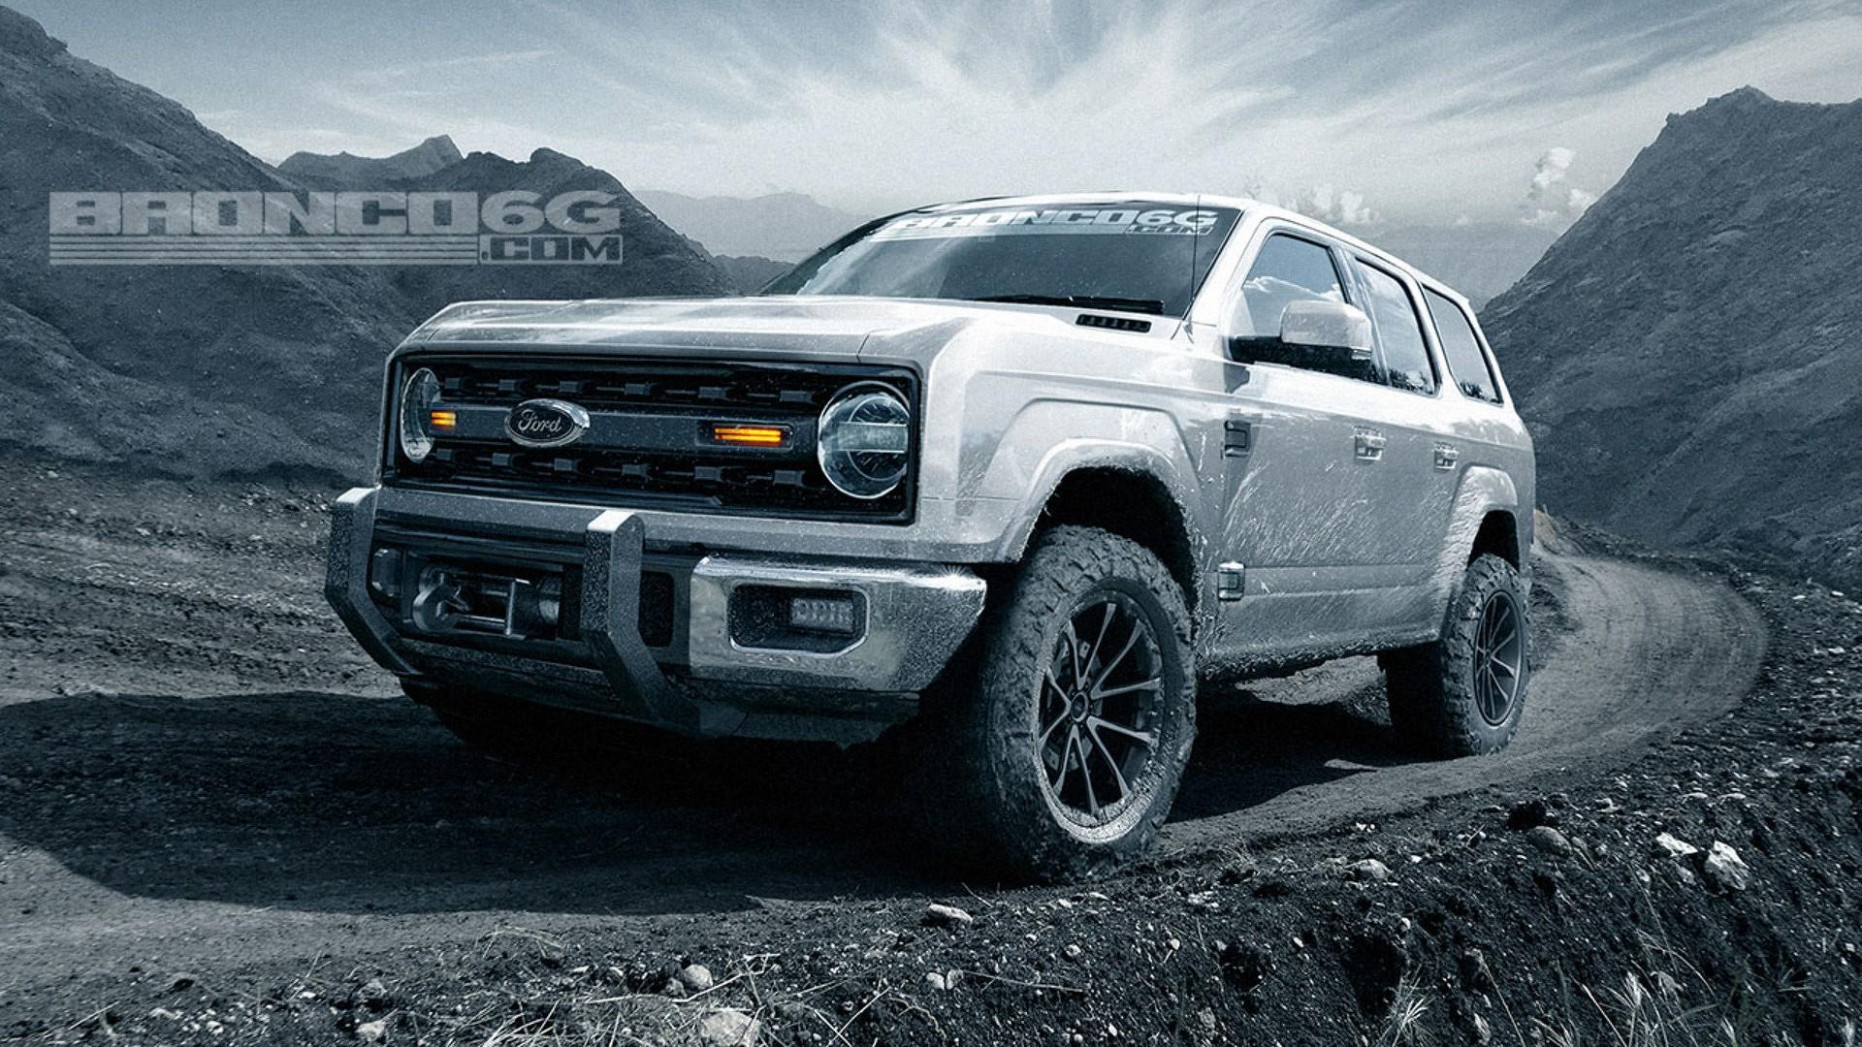 12 Ford Bronco Will Have Four Doors And 12 HP